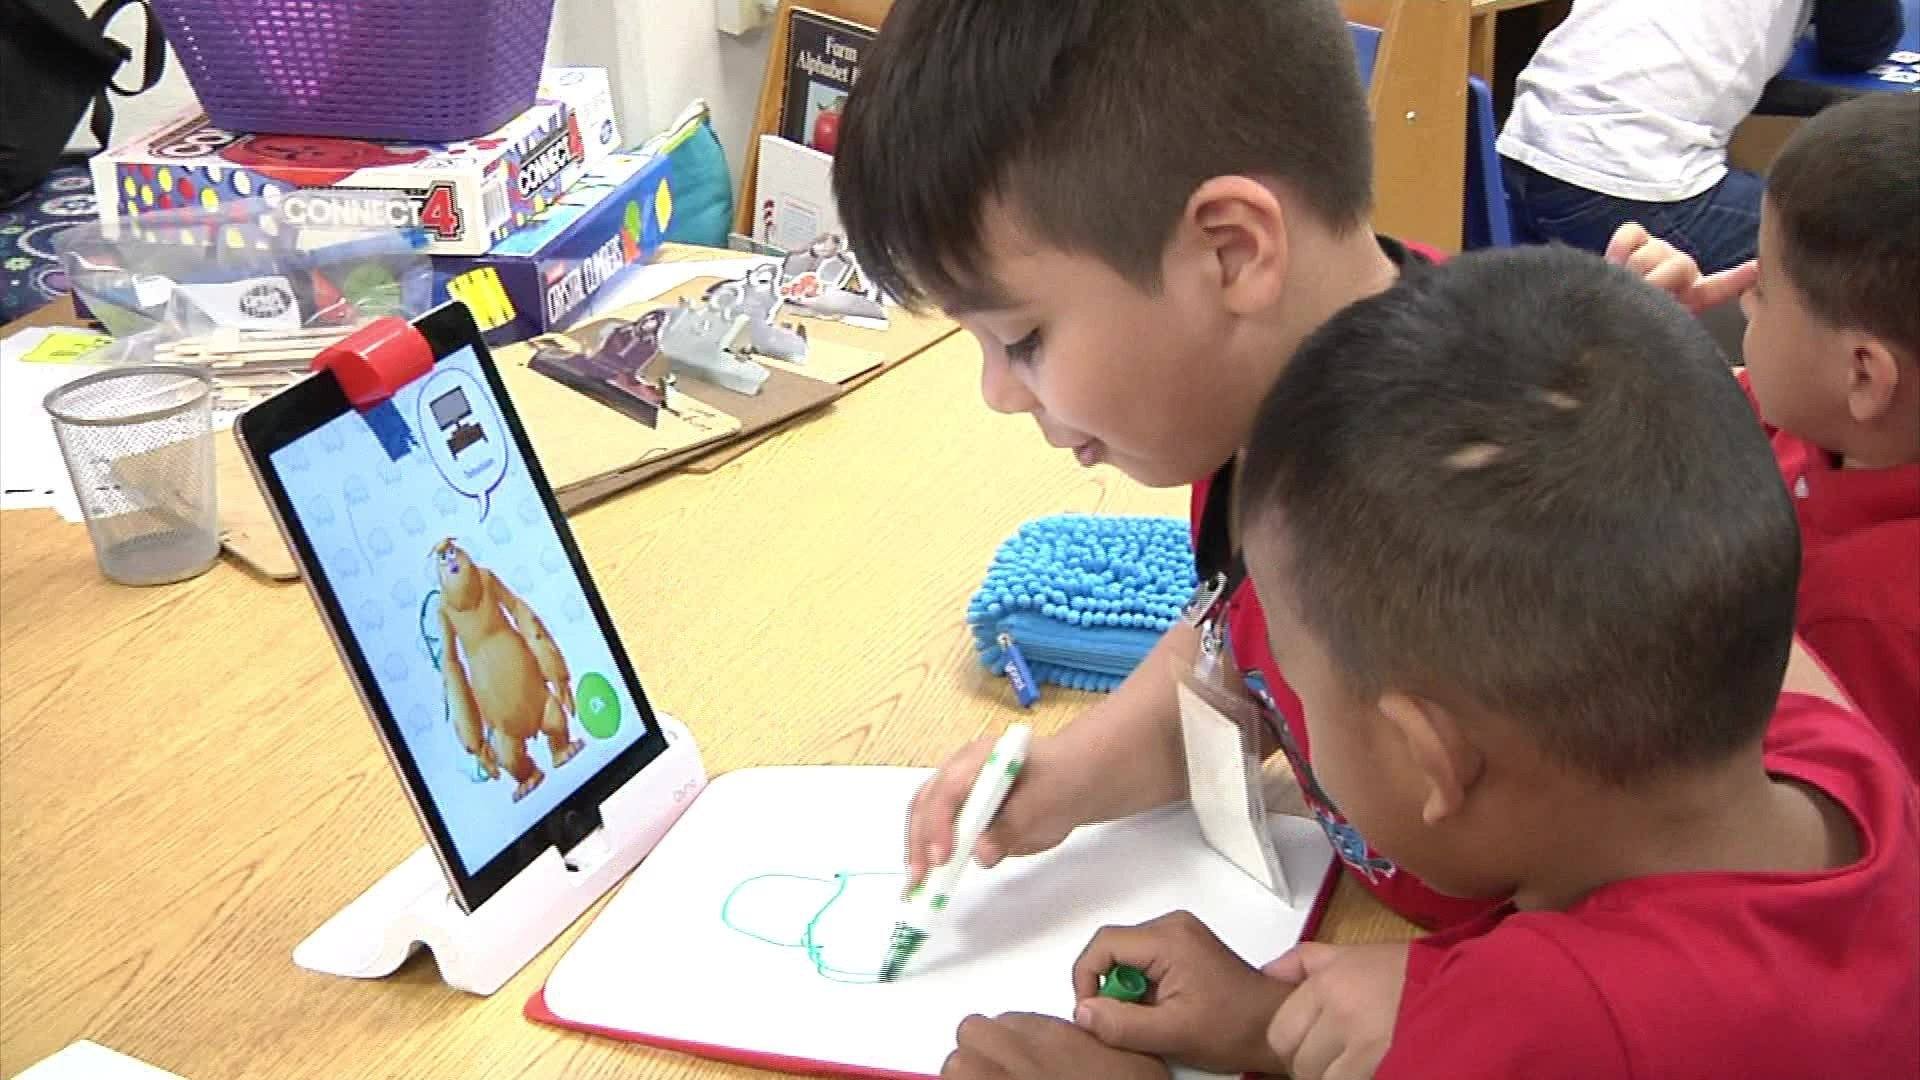 Students at Fred Douglass Early Learning Center are using iPads in their curriculum. (KTEN)